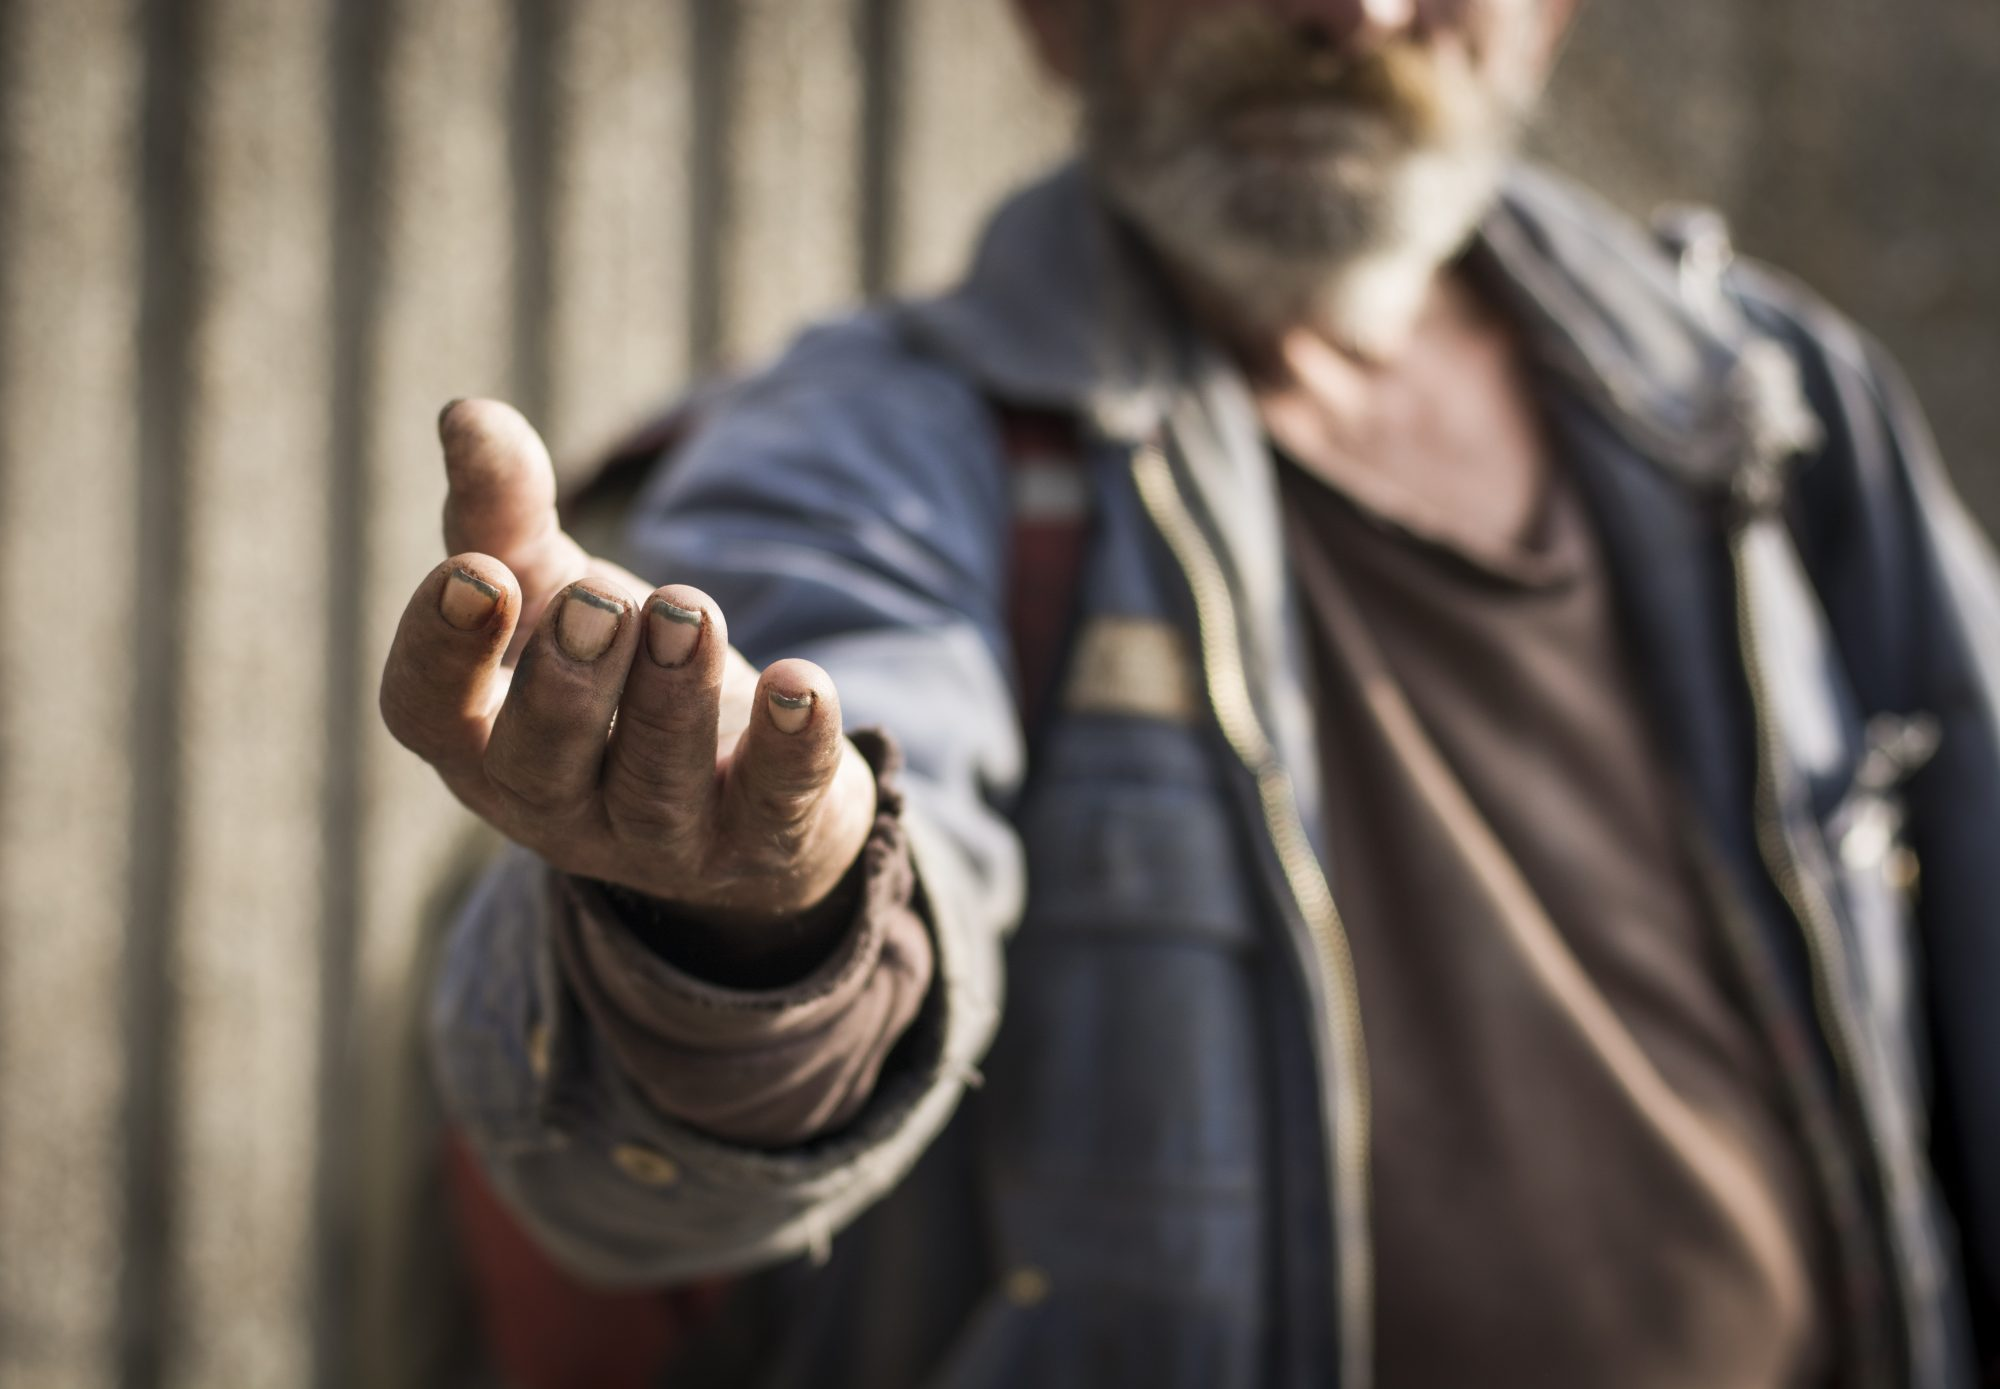 homeless man with hand out